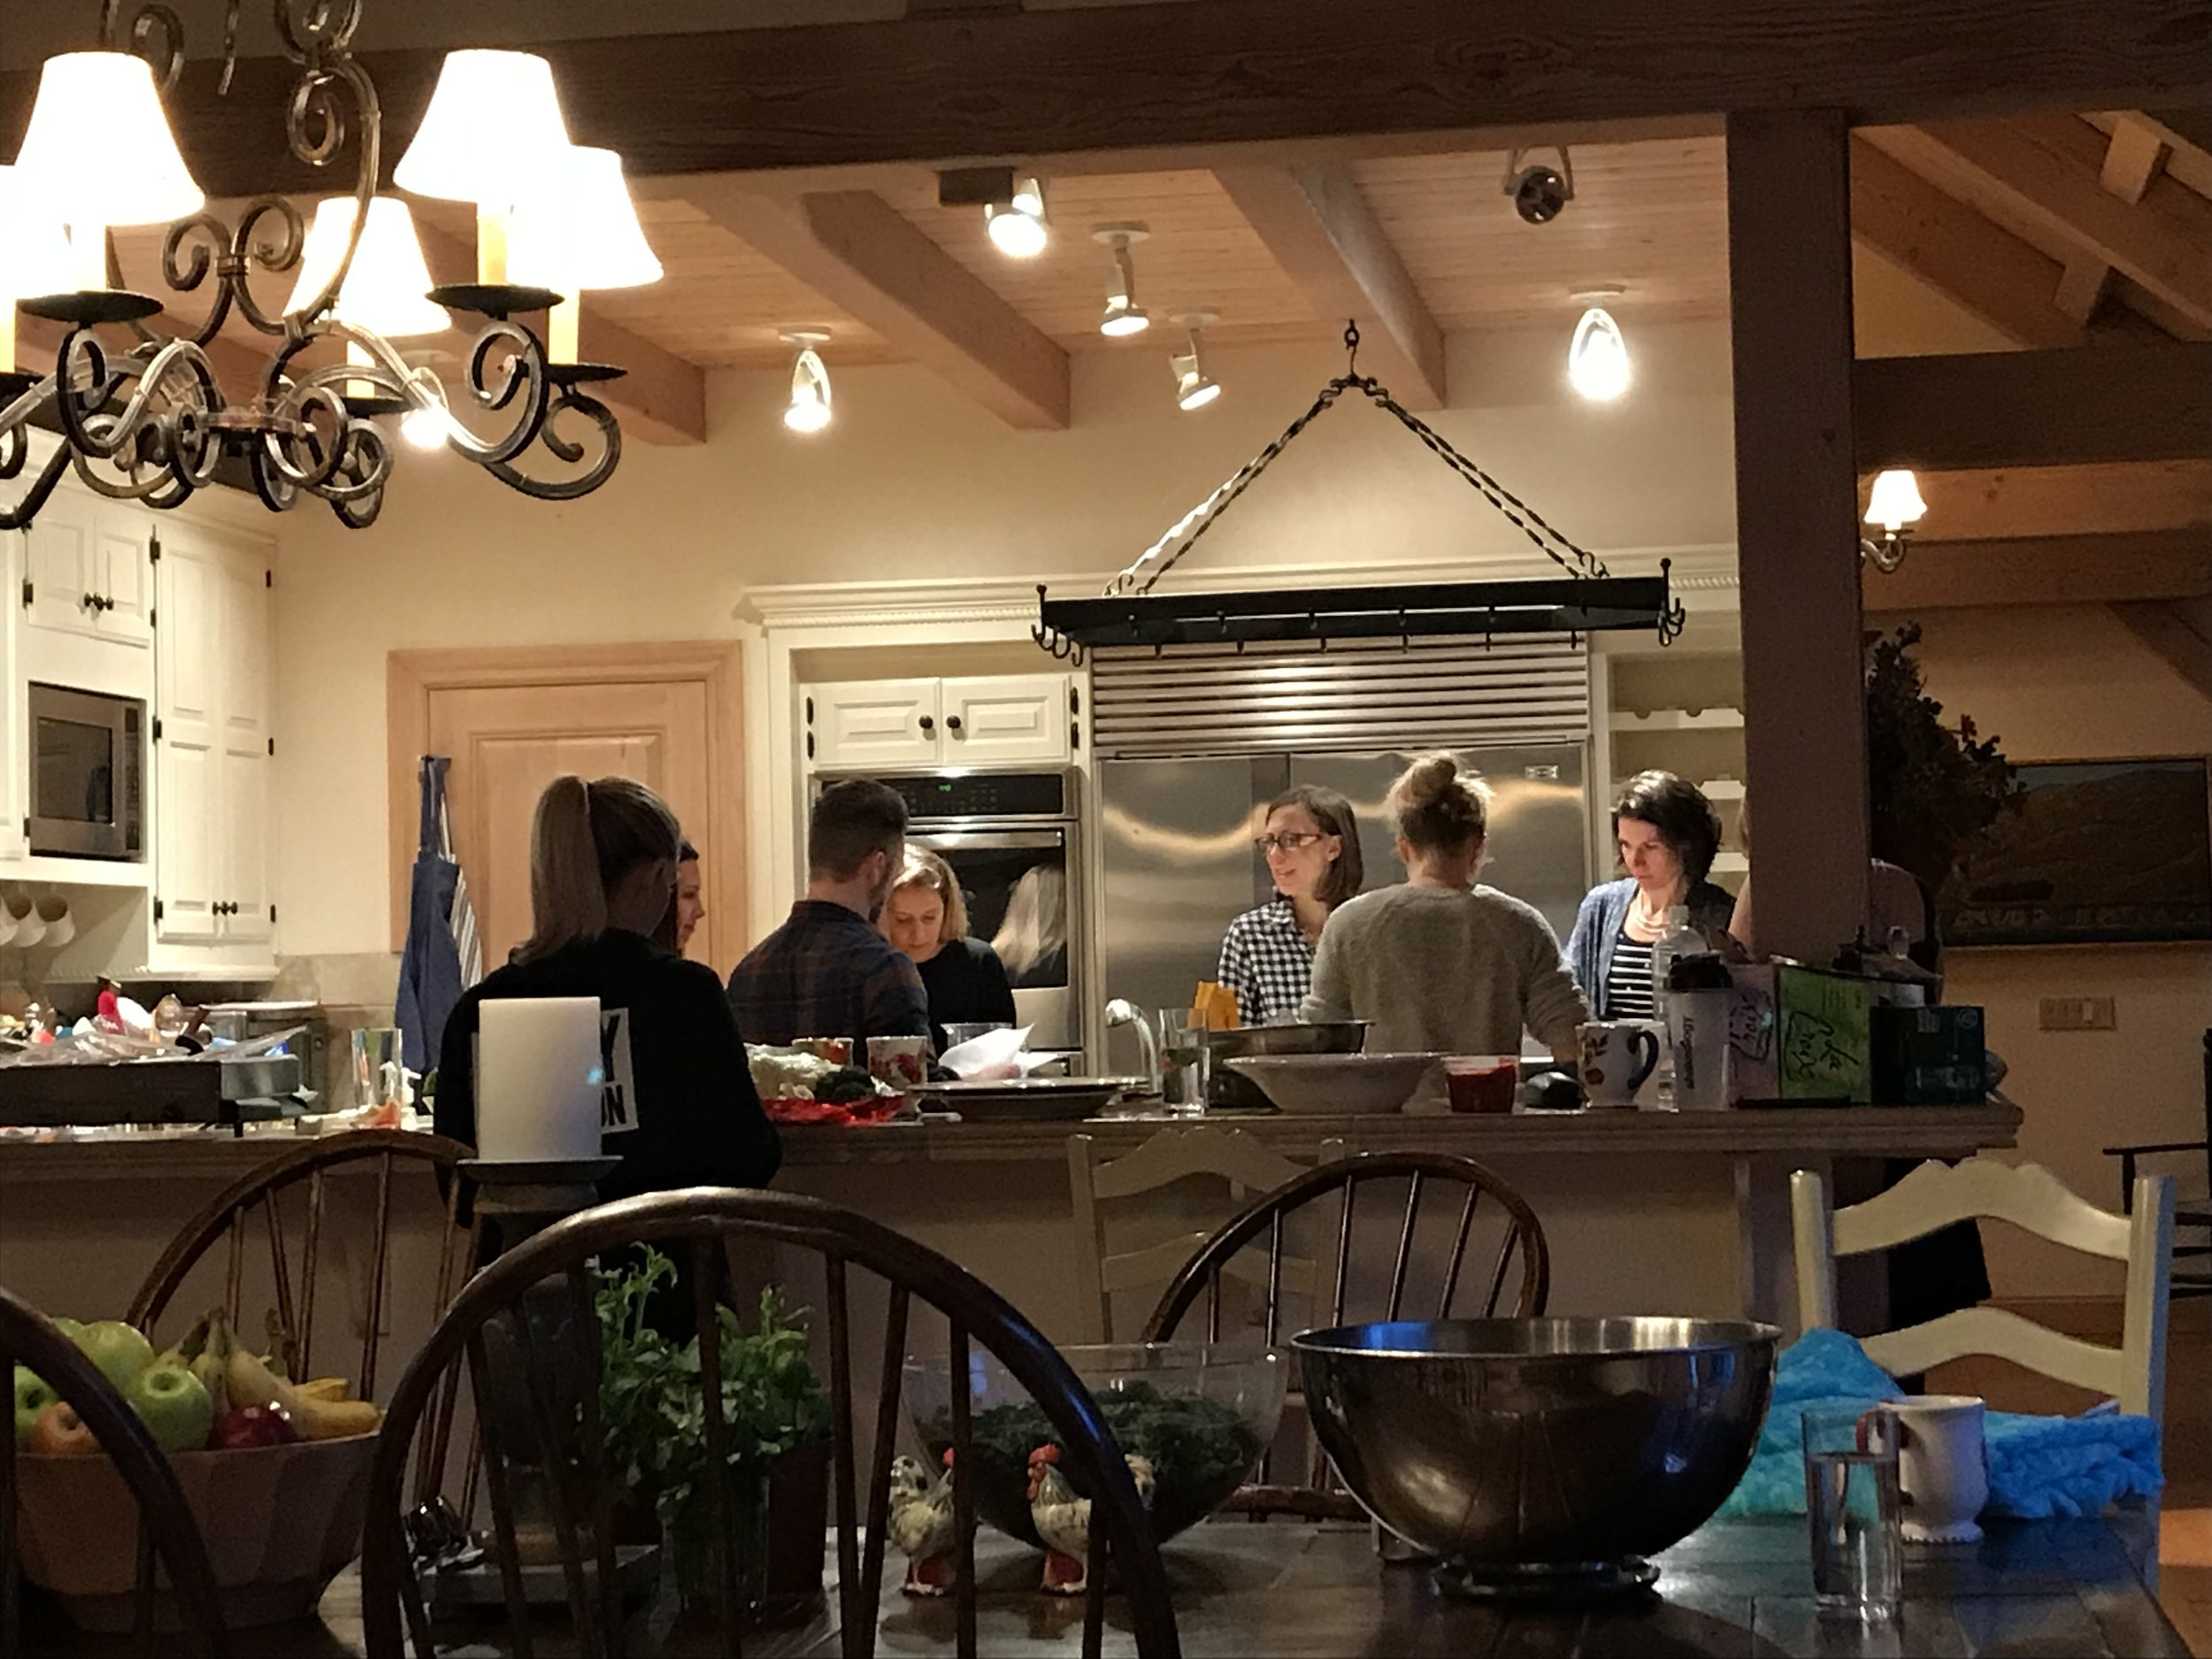 Bobby and others preparing dinner.